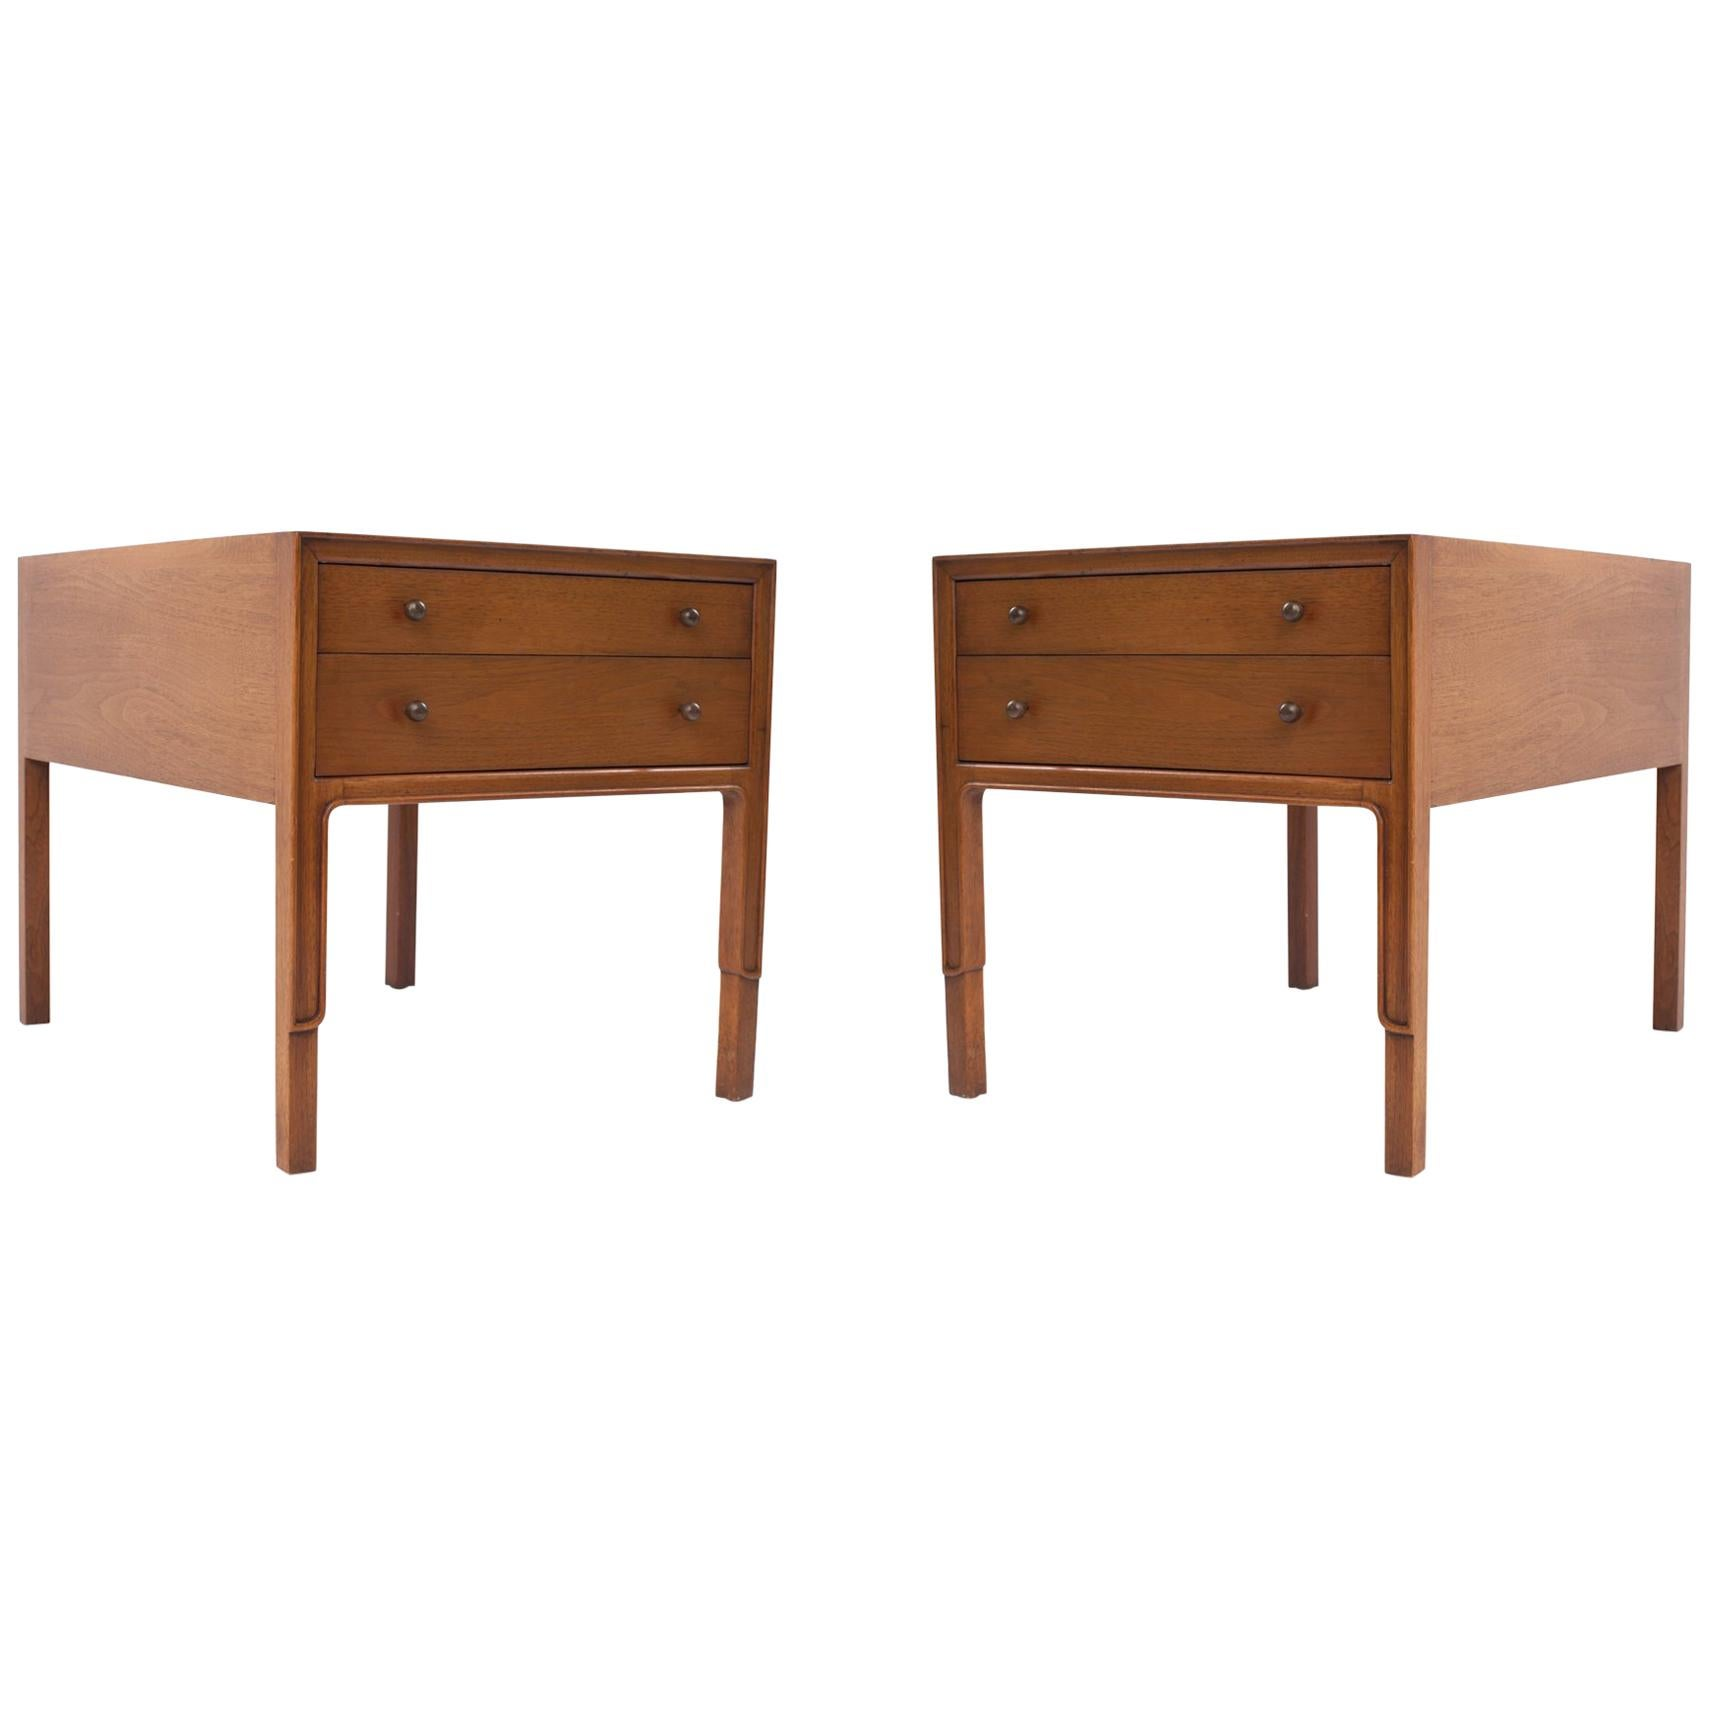 Classic Pair of Mahogany Bedside Tables by John Stuart, United States, 1960s